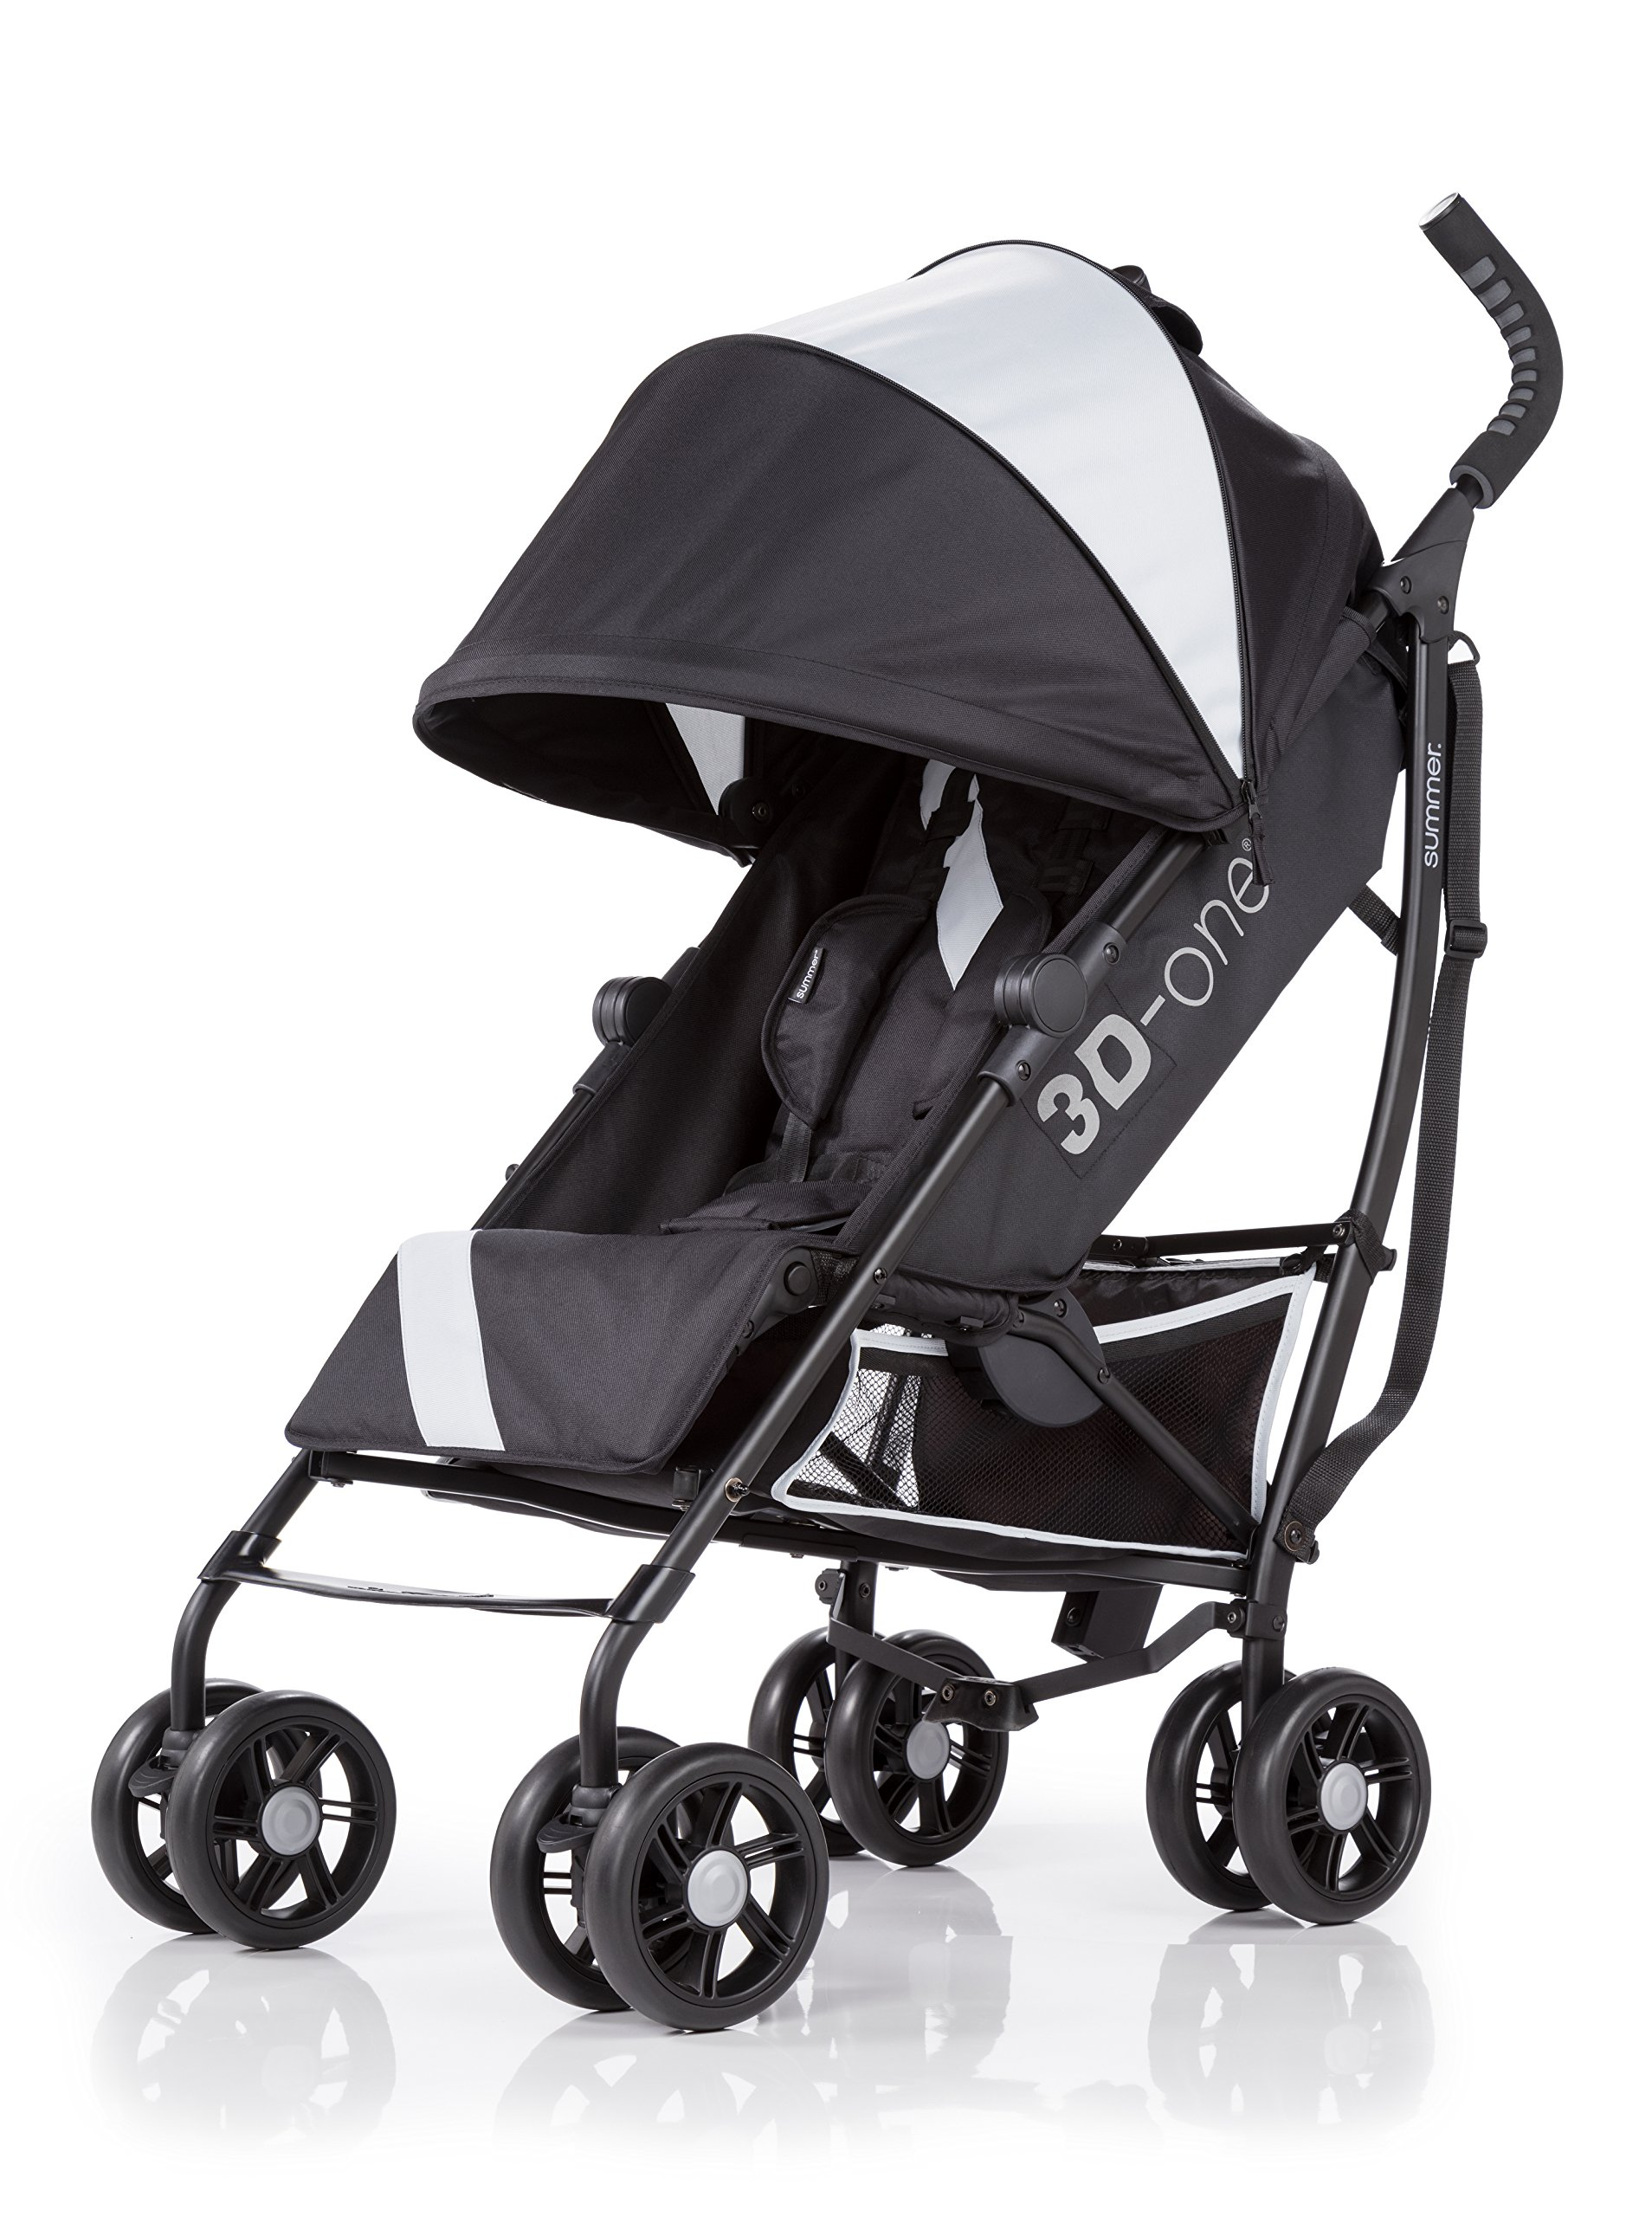 Summer Infant 3D-one Convenience Stroller, Eclipse Gray by Summer Infant (Image #1)